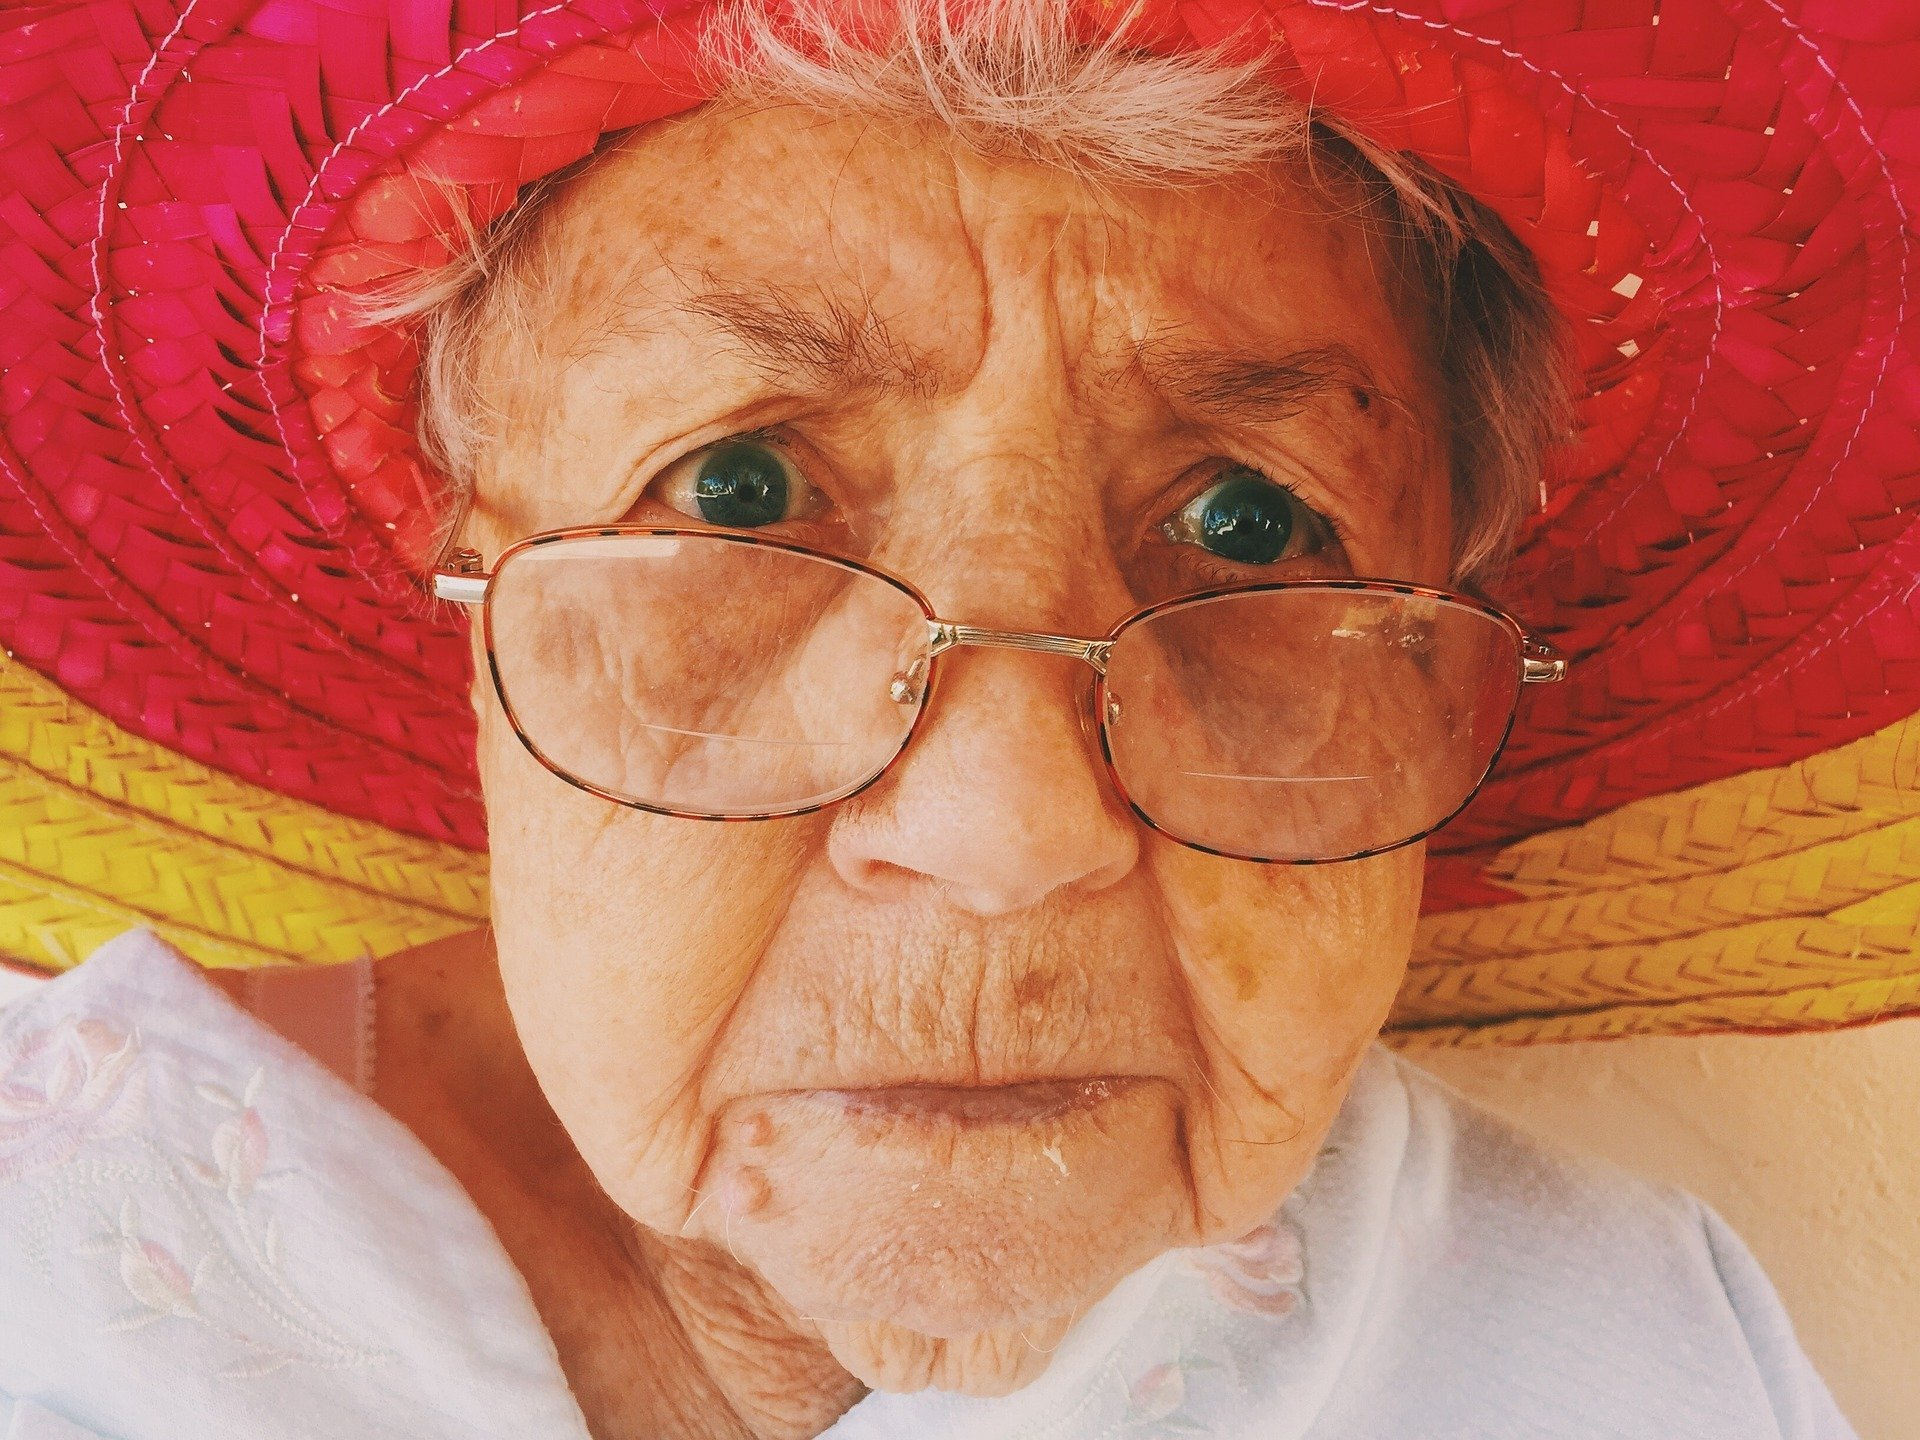 An old woman looking shocked while wearing a colorful hat and glasses | Photo: Pixabay